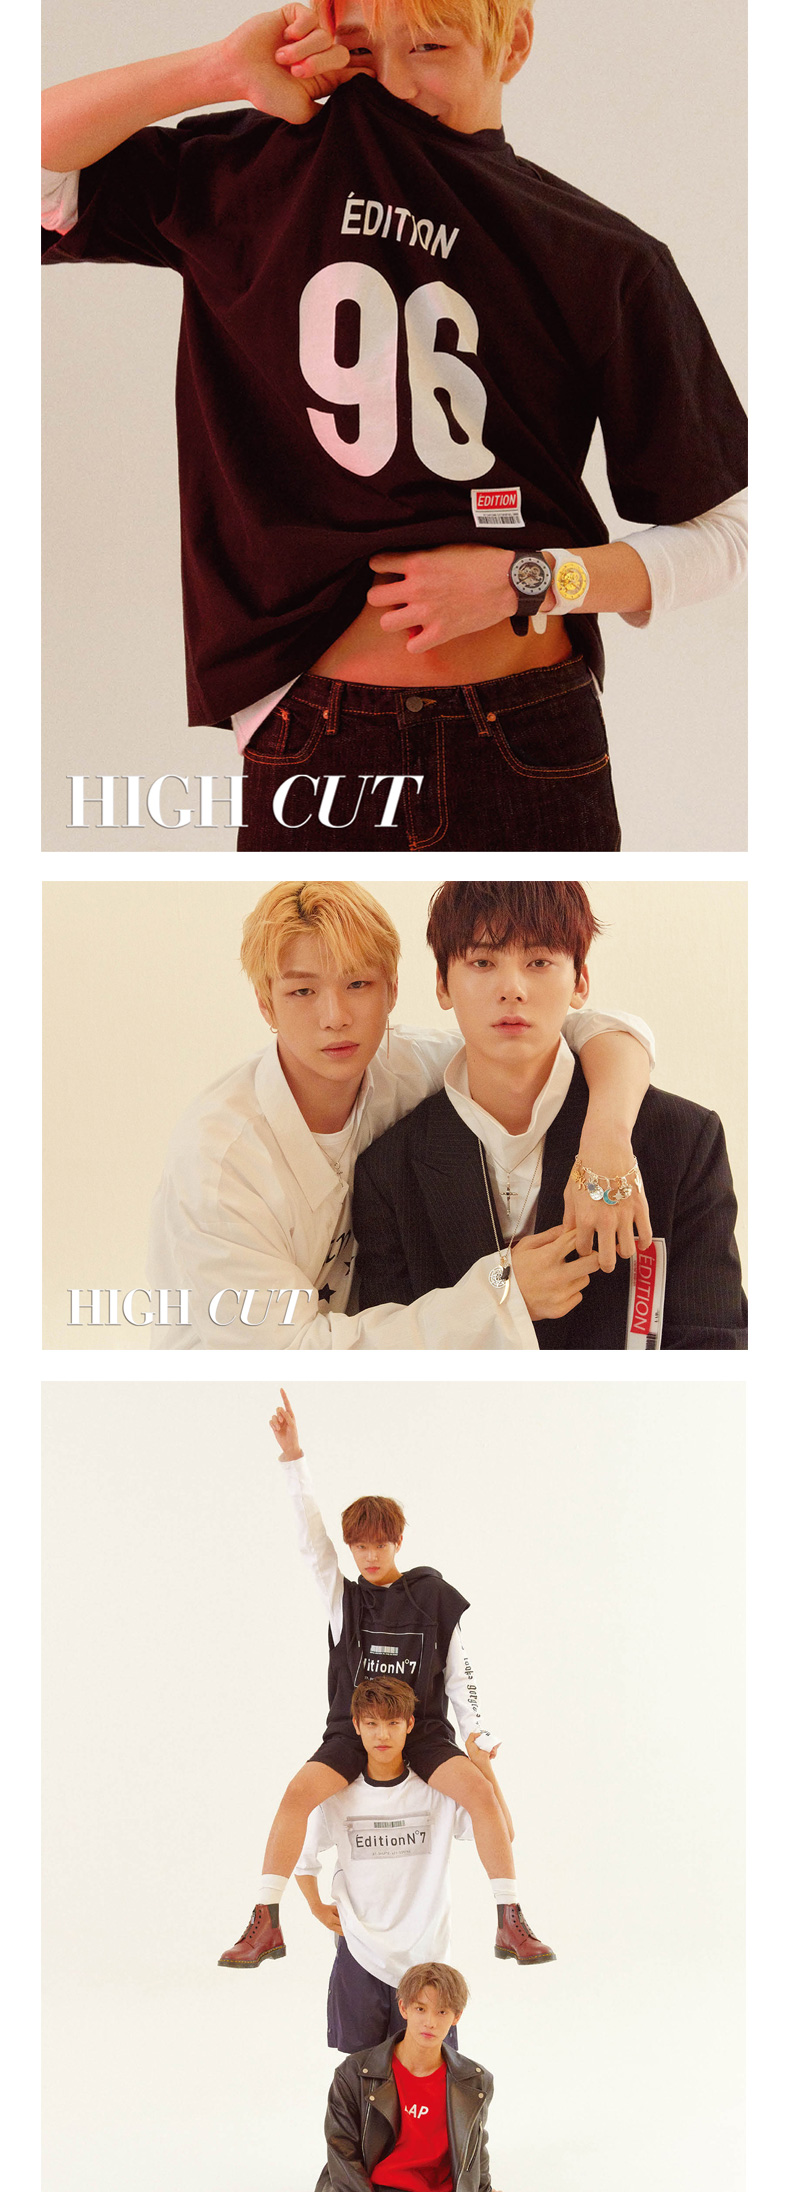 [Magazine] High Cut - Vol.216 A Type (Wanna one)